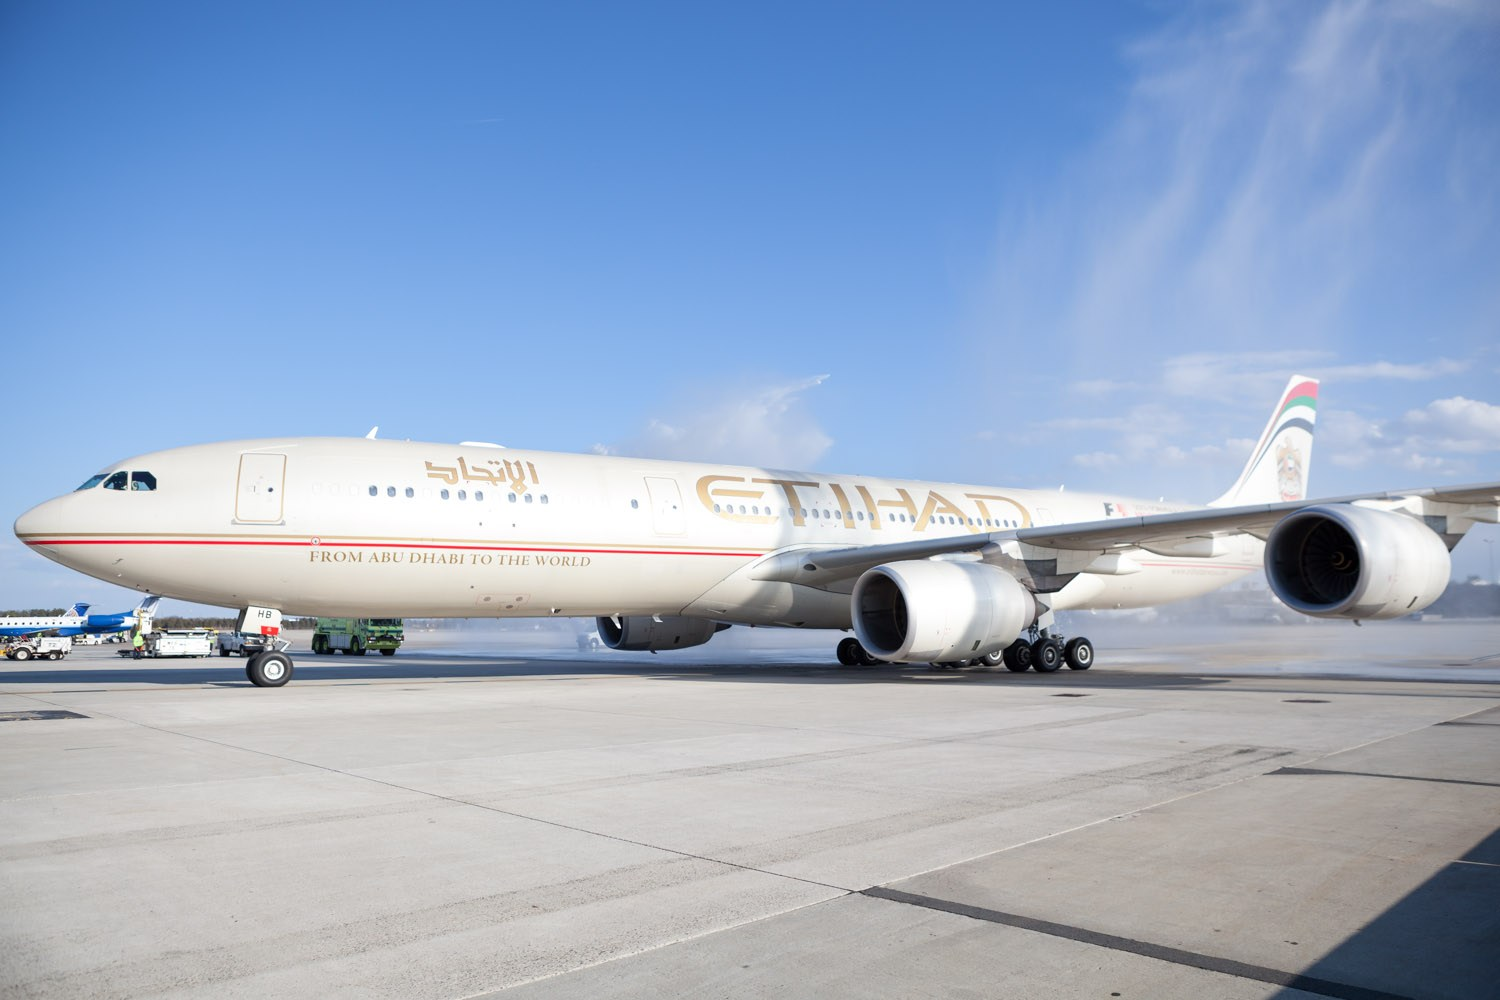 Etihad's Airbus A340-500 aircraft arrives at Dulles Airport.